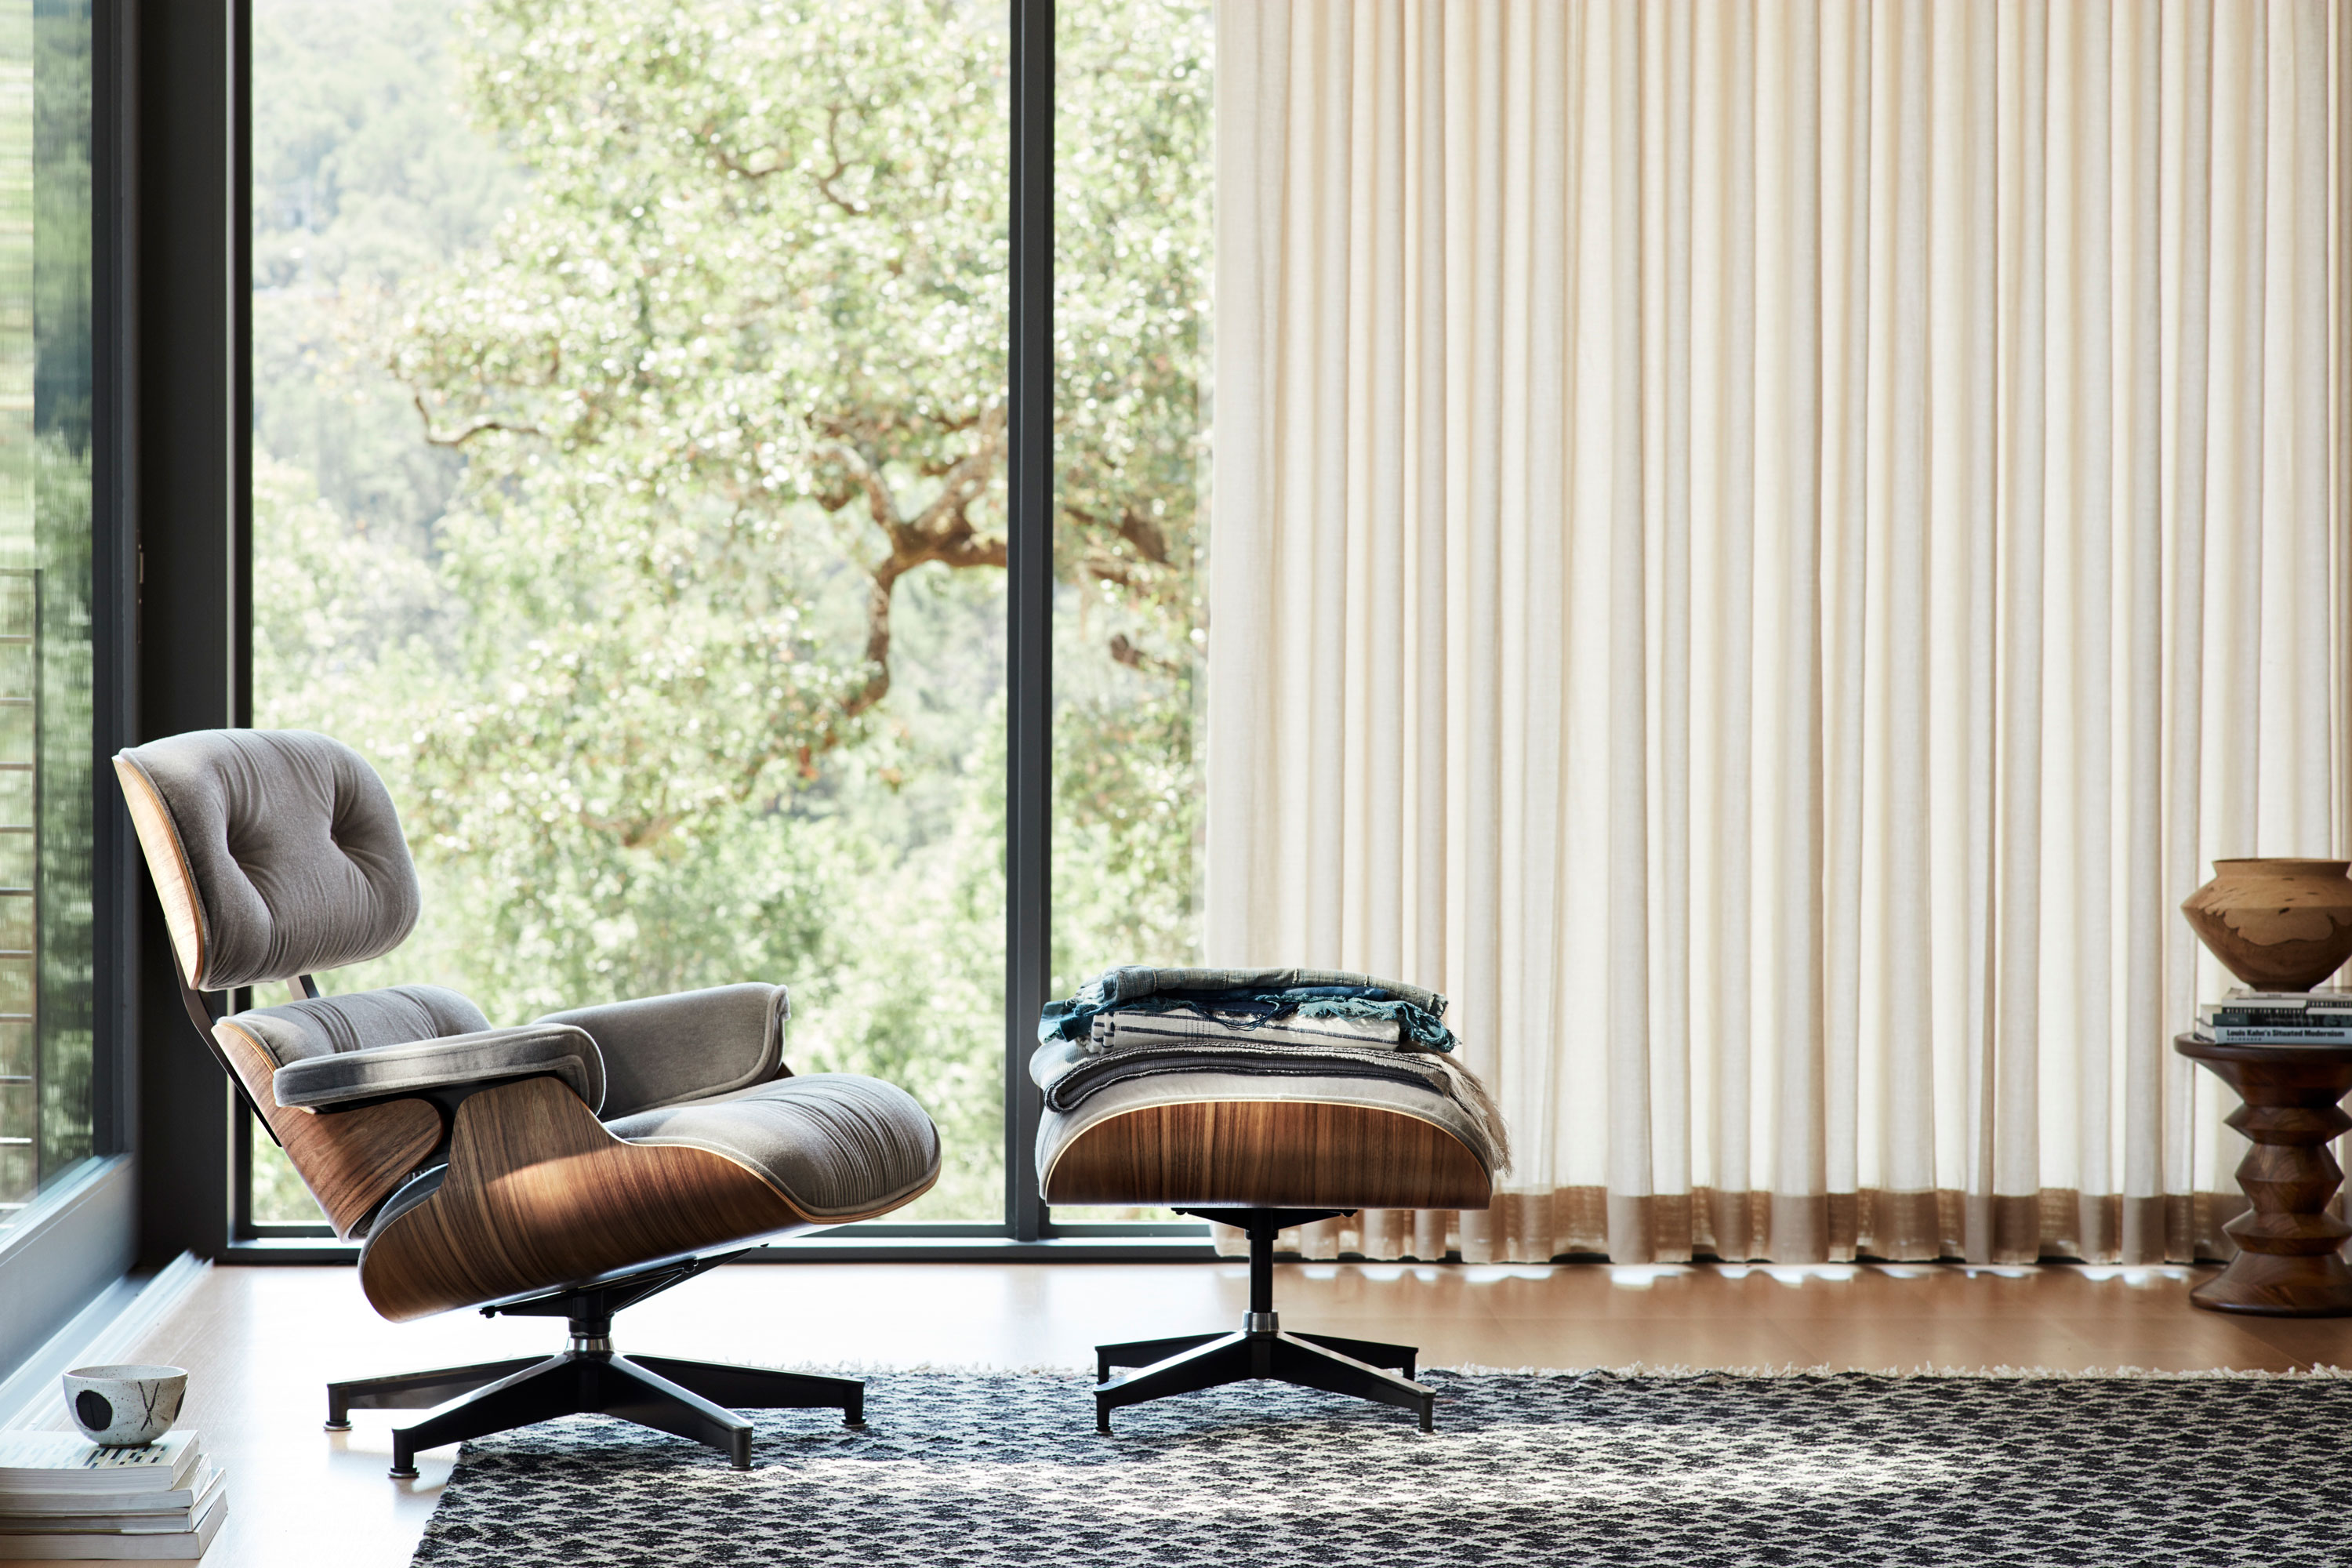 Eames Lounge Chair Living Room hot seat: the history behind the eames lounge chair